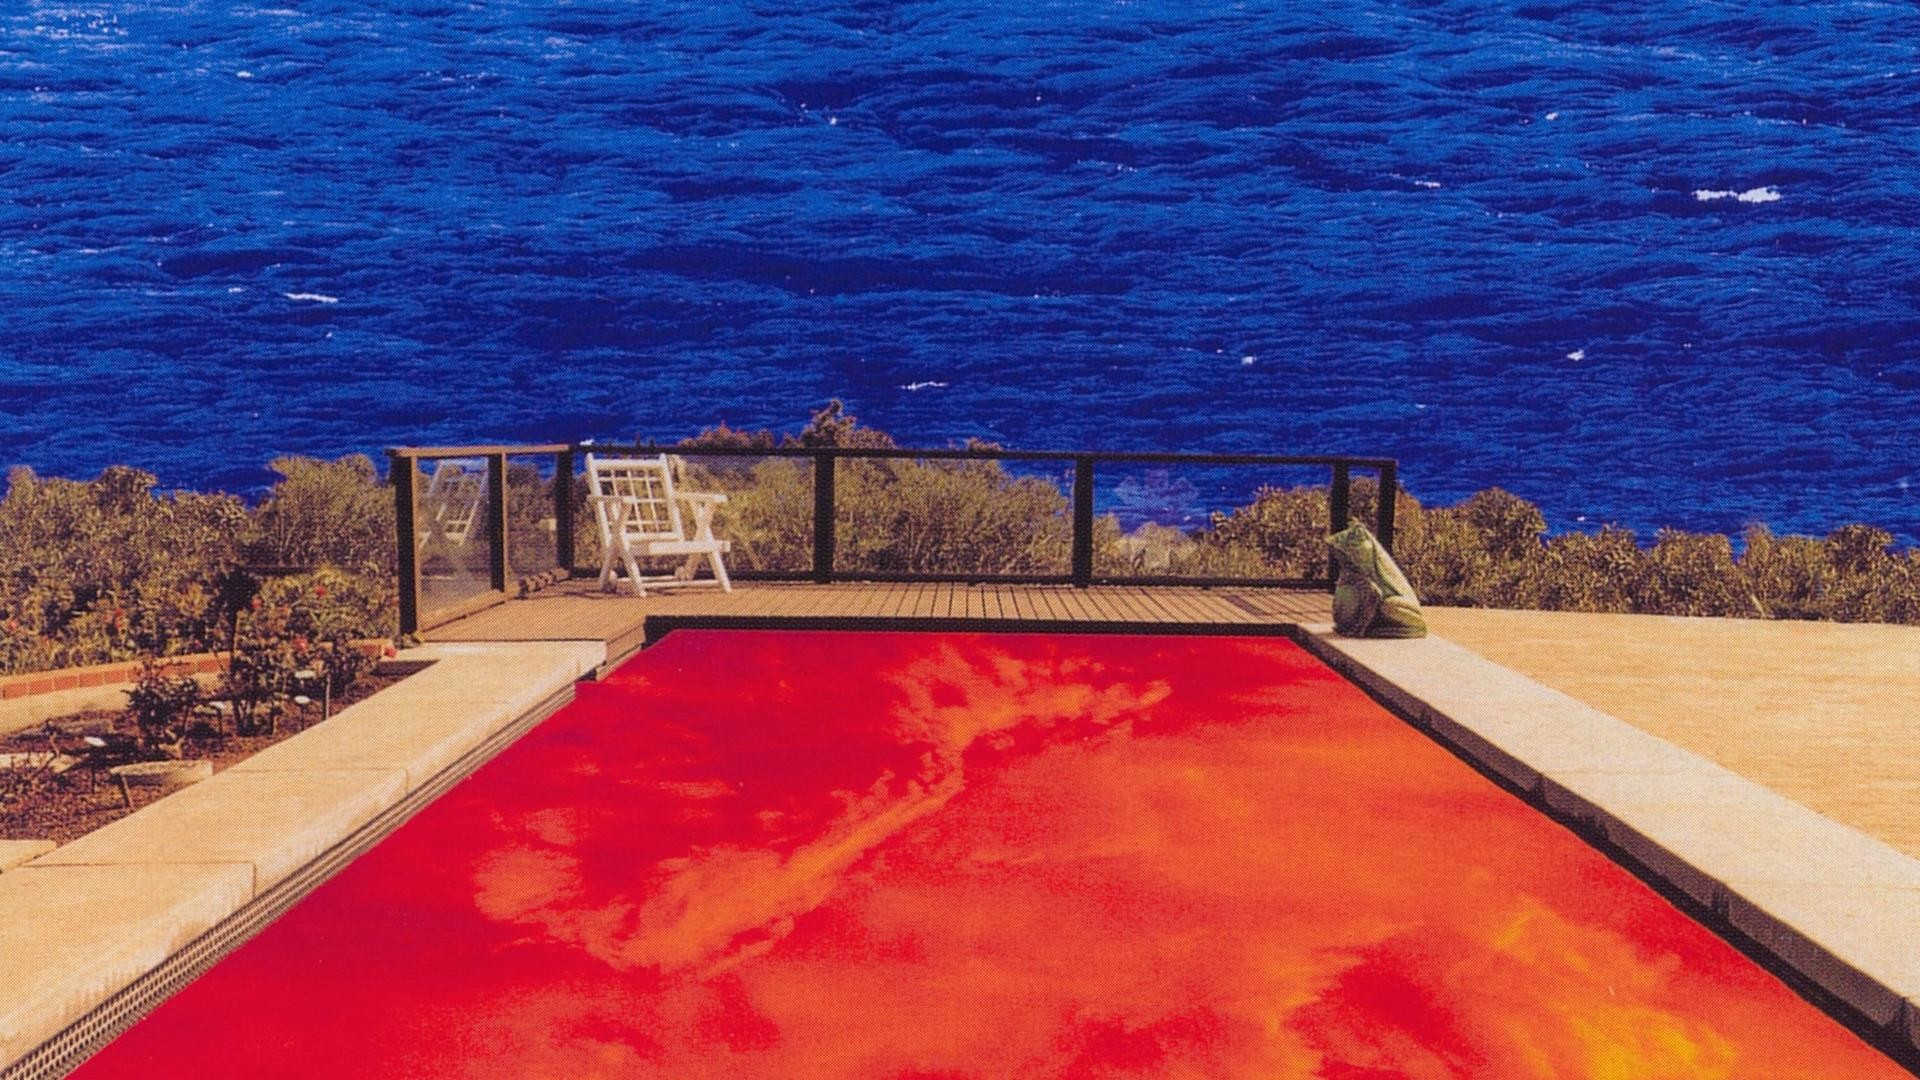 1920x1080 1920 x 1080Californication (RHCP album cover art) [] ...